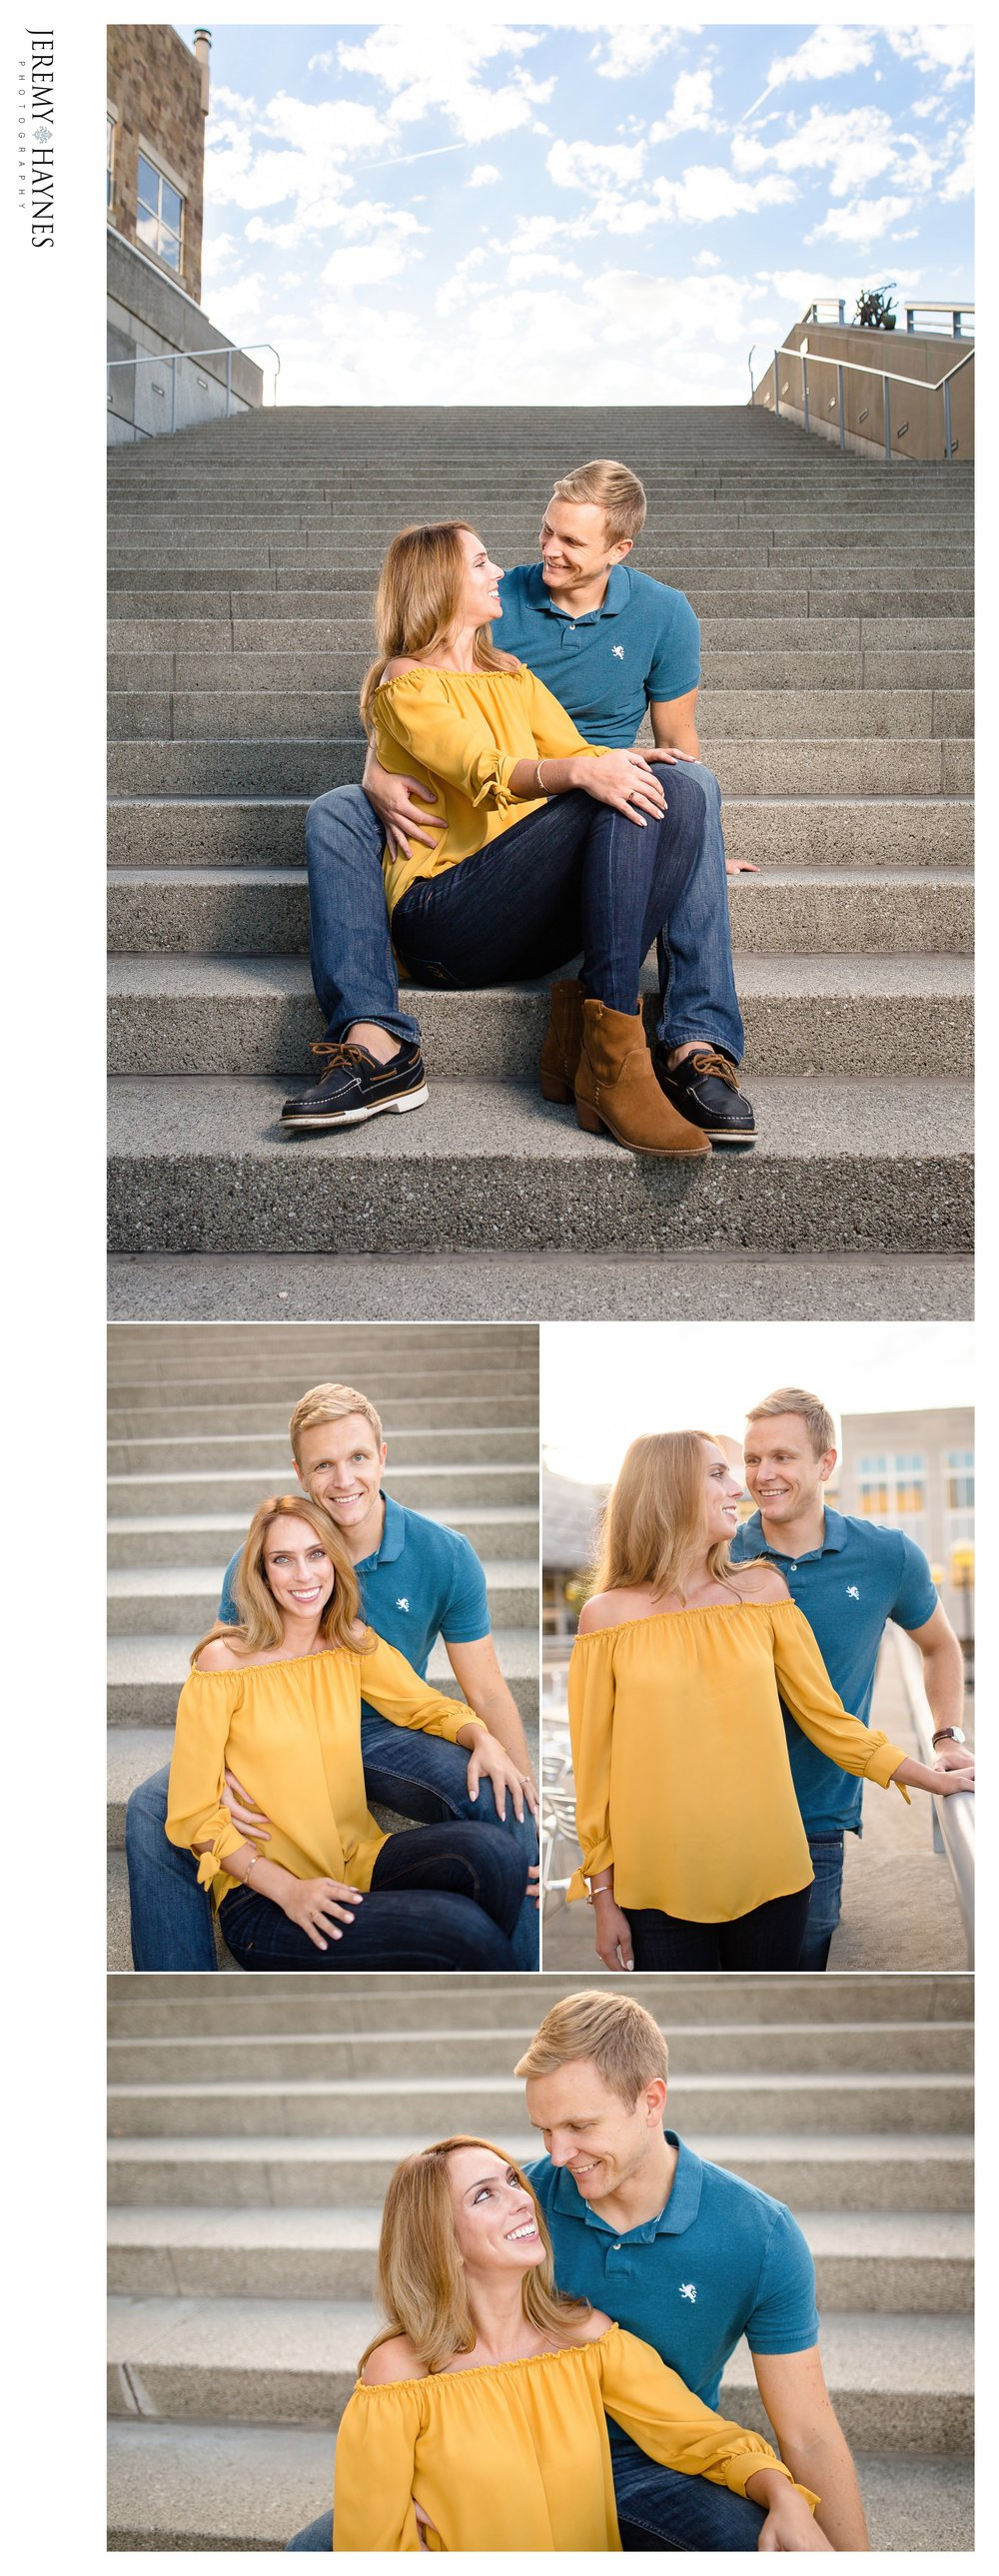 engagement-indianapolis-canal-pictures.jpg